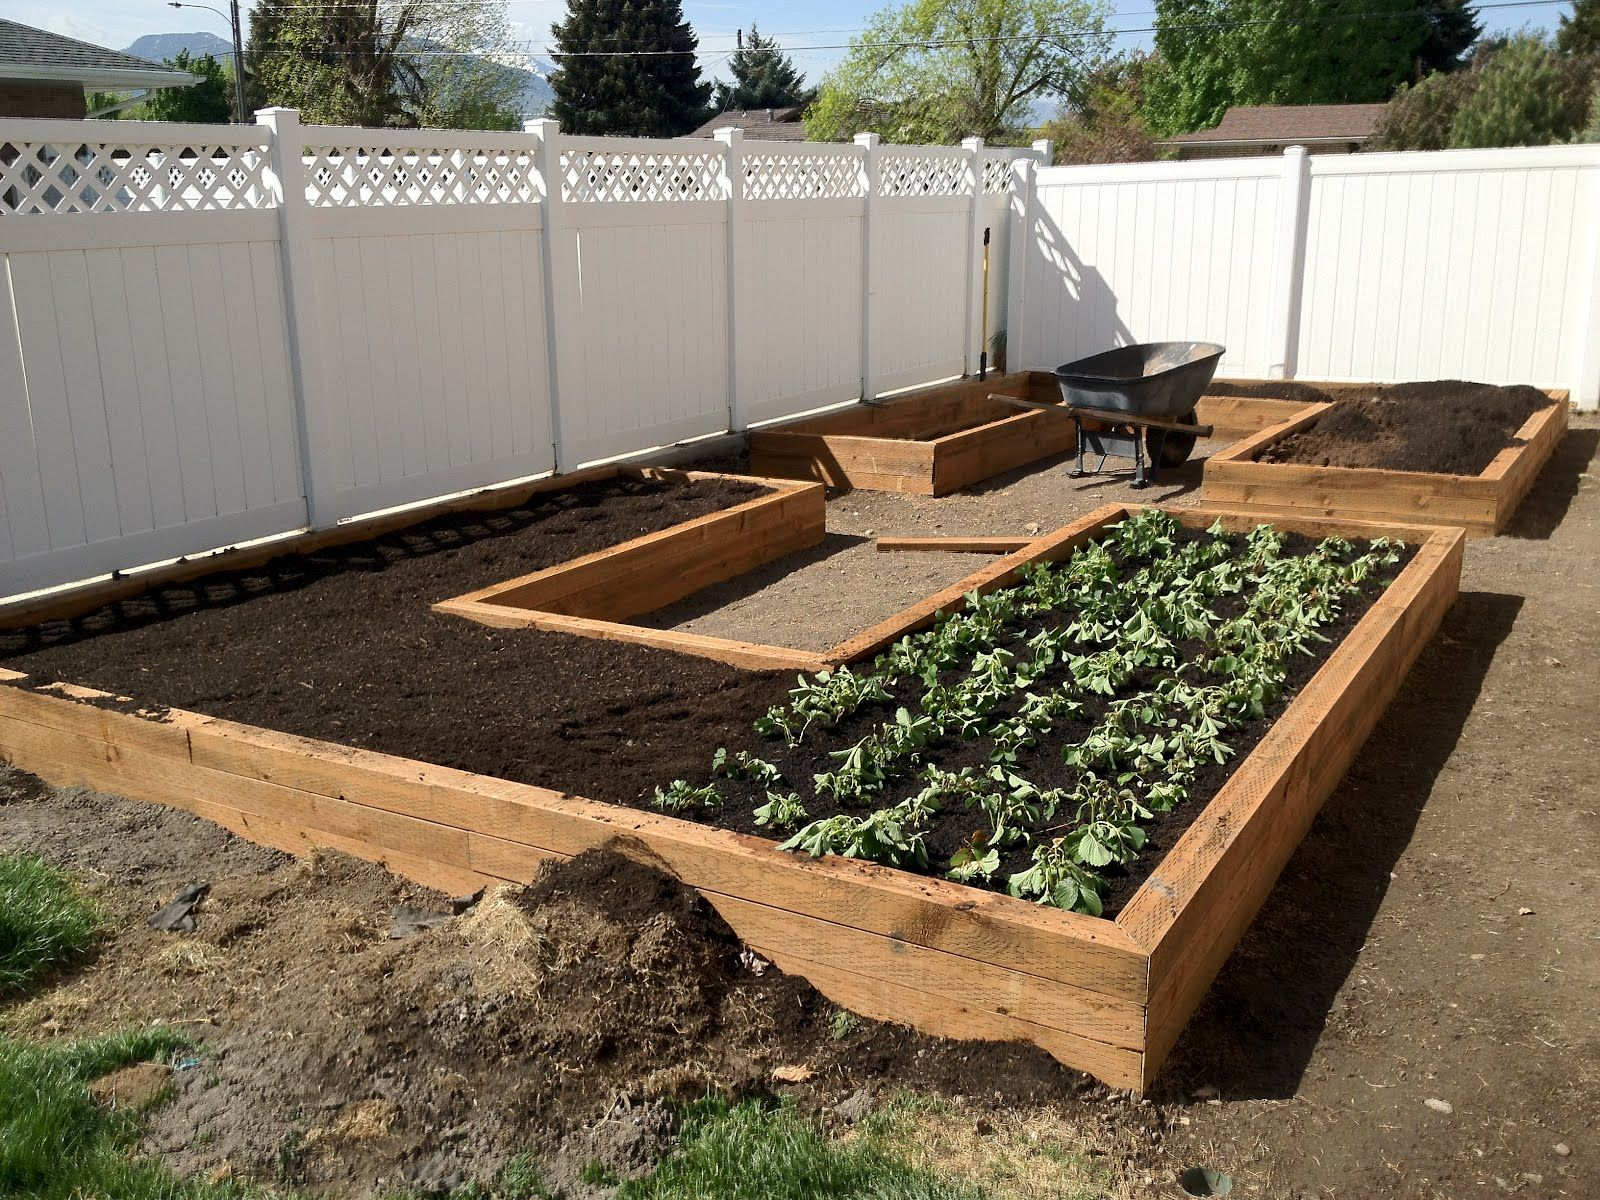 Instructions For Making Raised Garden Beds How To Build Garden Boxes Step By Step Instructions